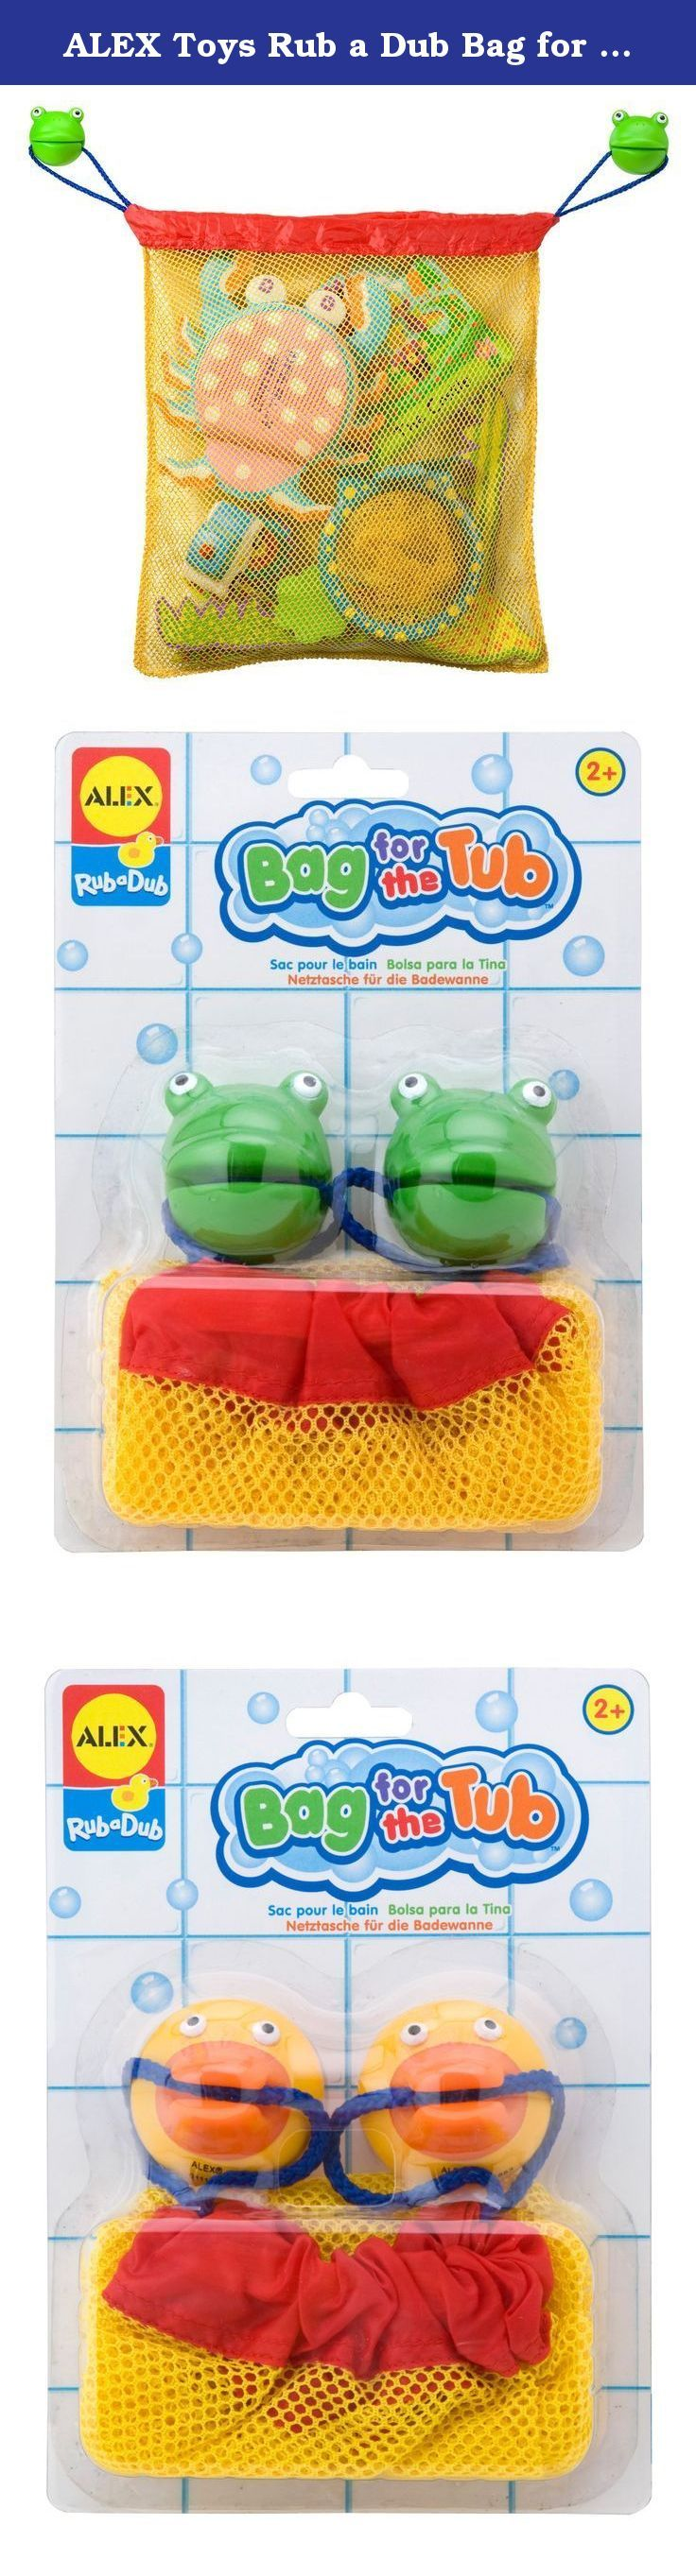 ALEX Toys Rub a Dub Bag for the Tub. ALEX Toys - Bathtime Fun, Bag for the Tub, 630N is a sturdy mesh drawstring bag which hangs from suction cup character hooks. Bag measures 14 by 15 inches (36 by 38 centimeters). It is available assorted as frogs and ducks. ALEX Bath toys are designed to turn the chore of bath time into fun time. We understand that when kids are having fun, they're open to new experiences and learning. That's why, in addition to the core ingredient of fun, we also...